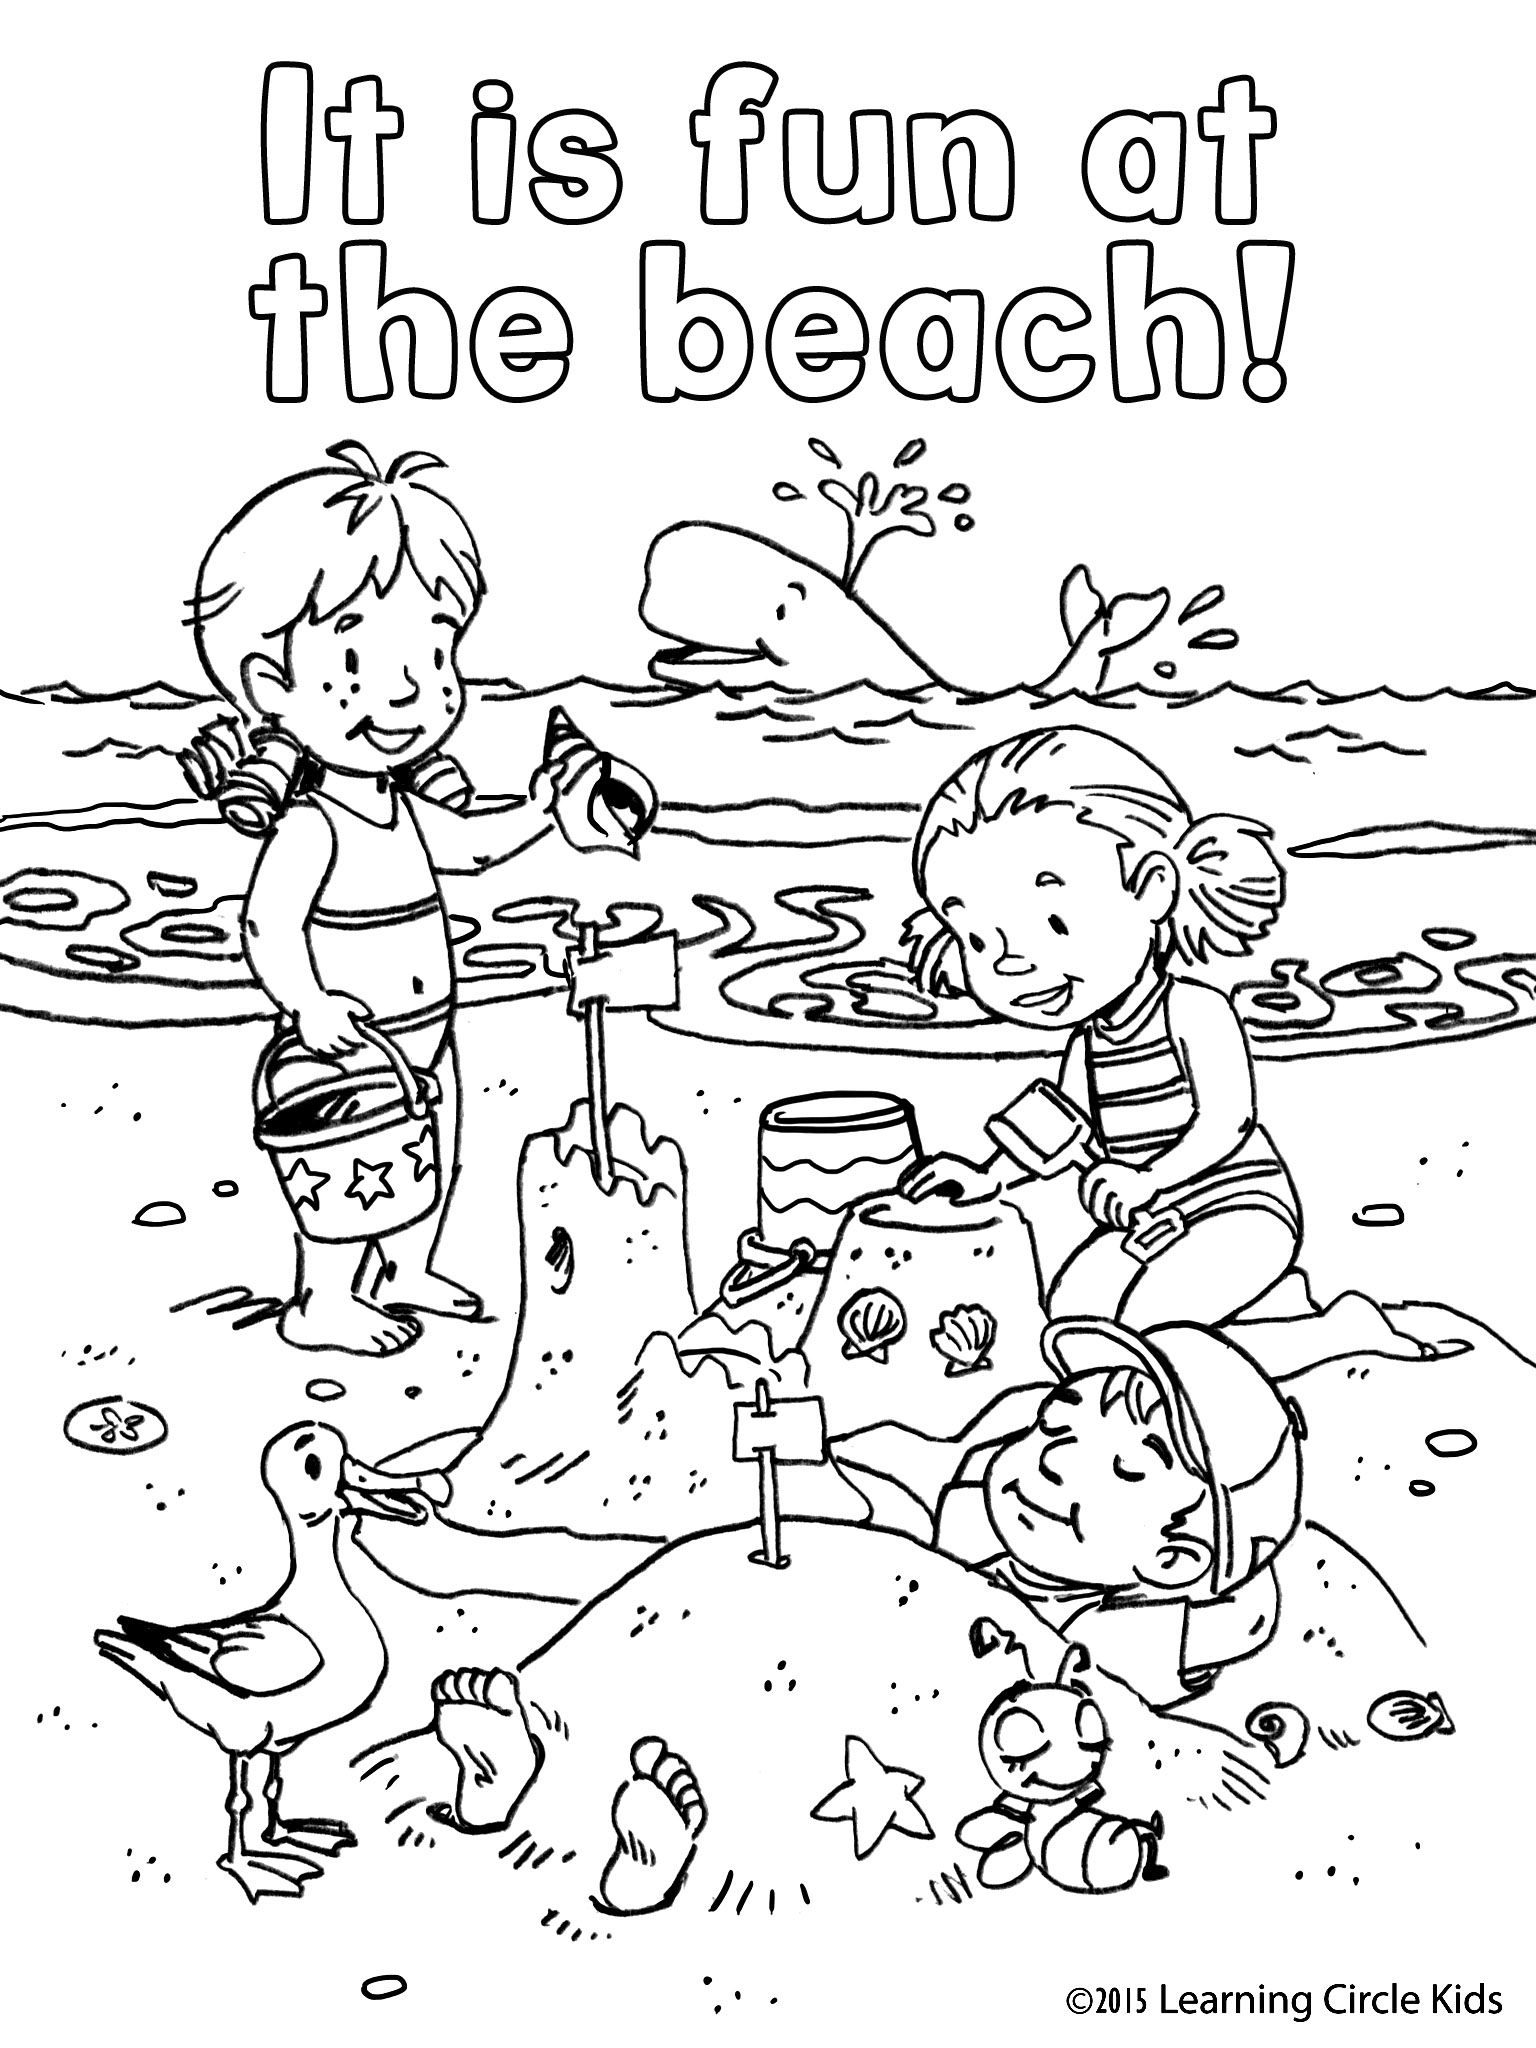 Free coloring page. Children's summer fun at the beach ...